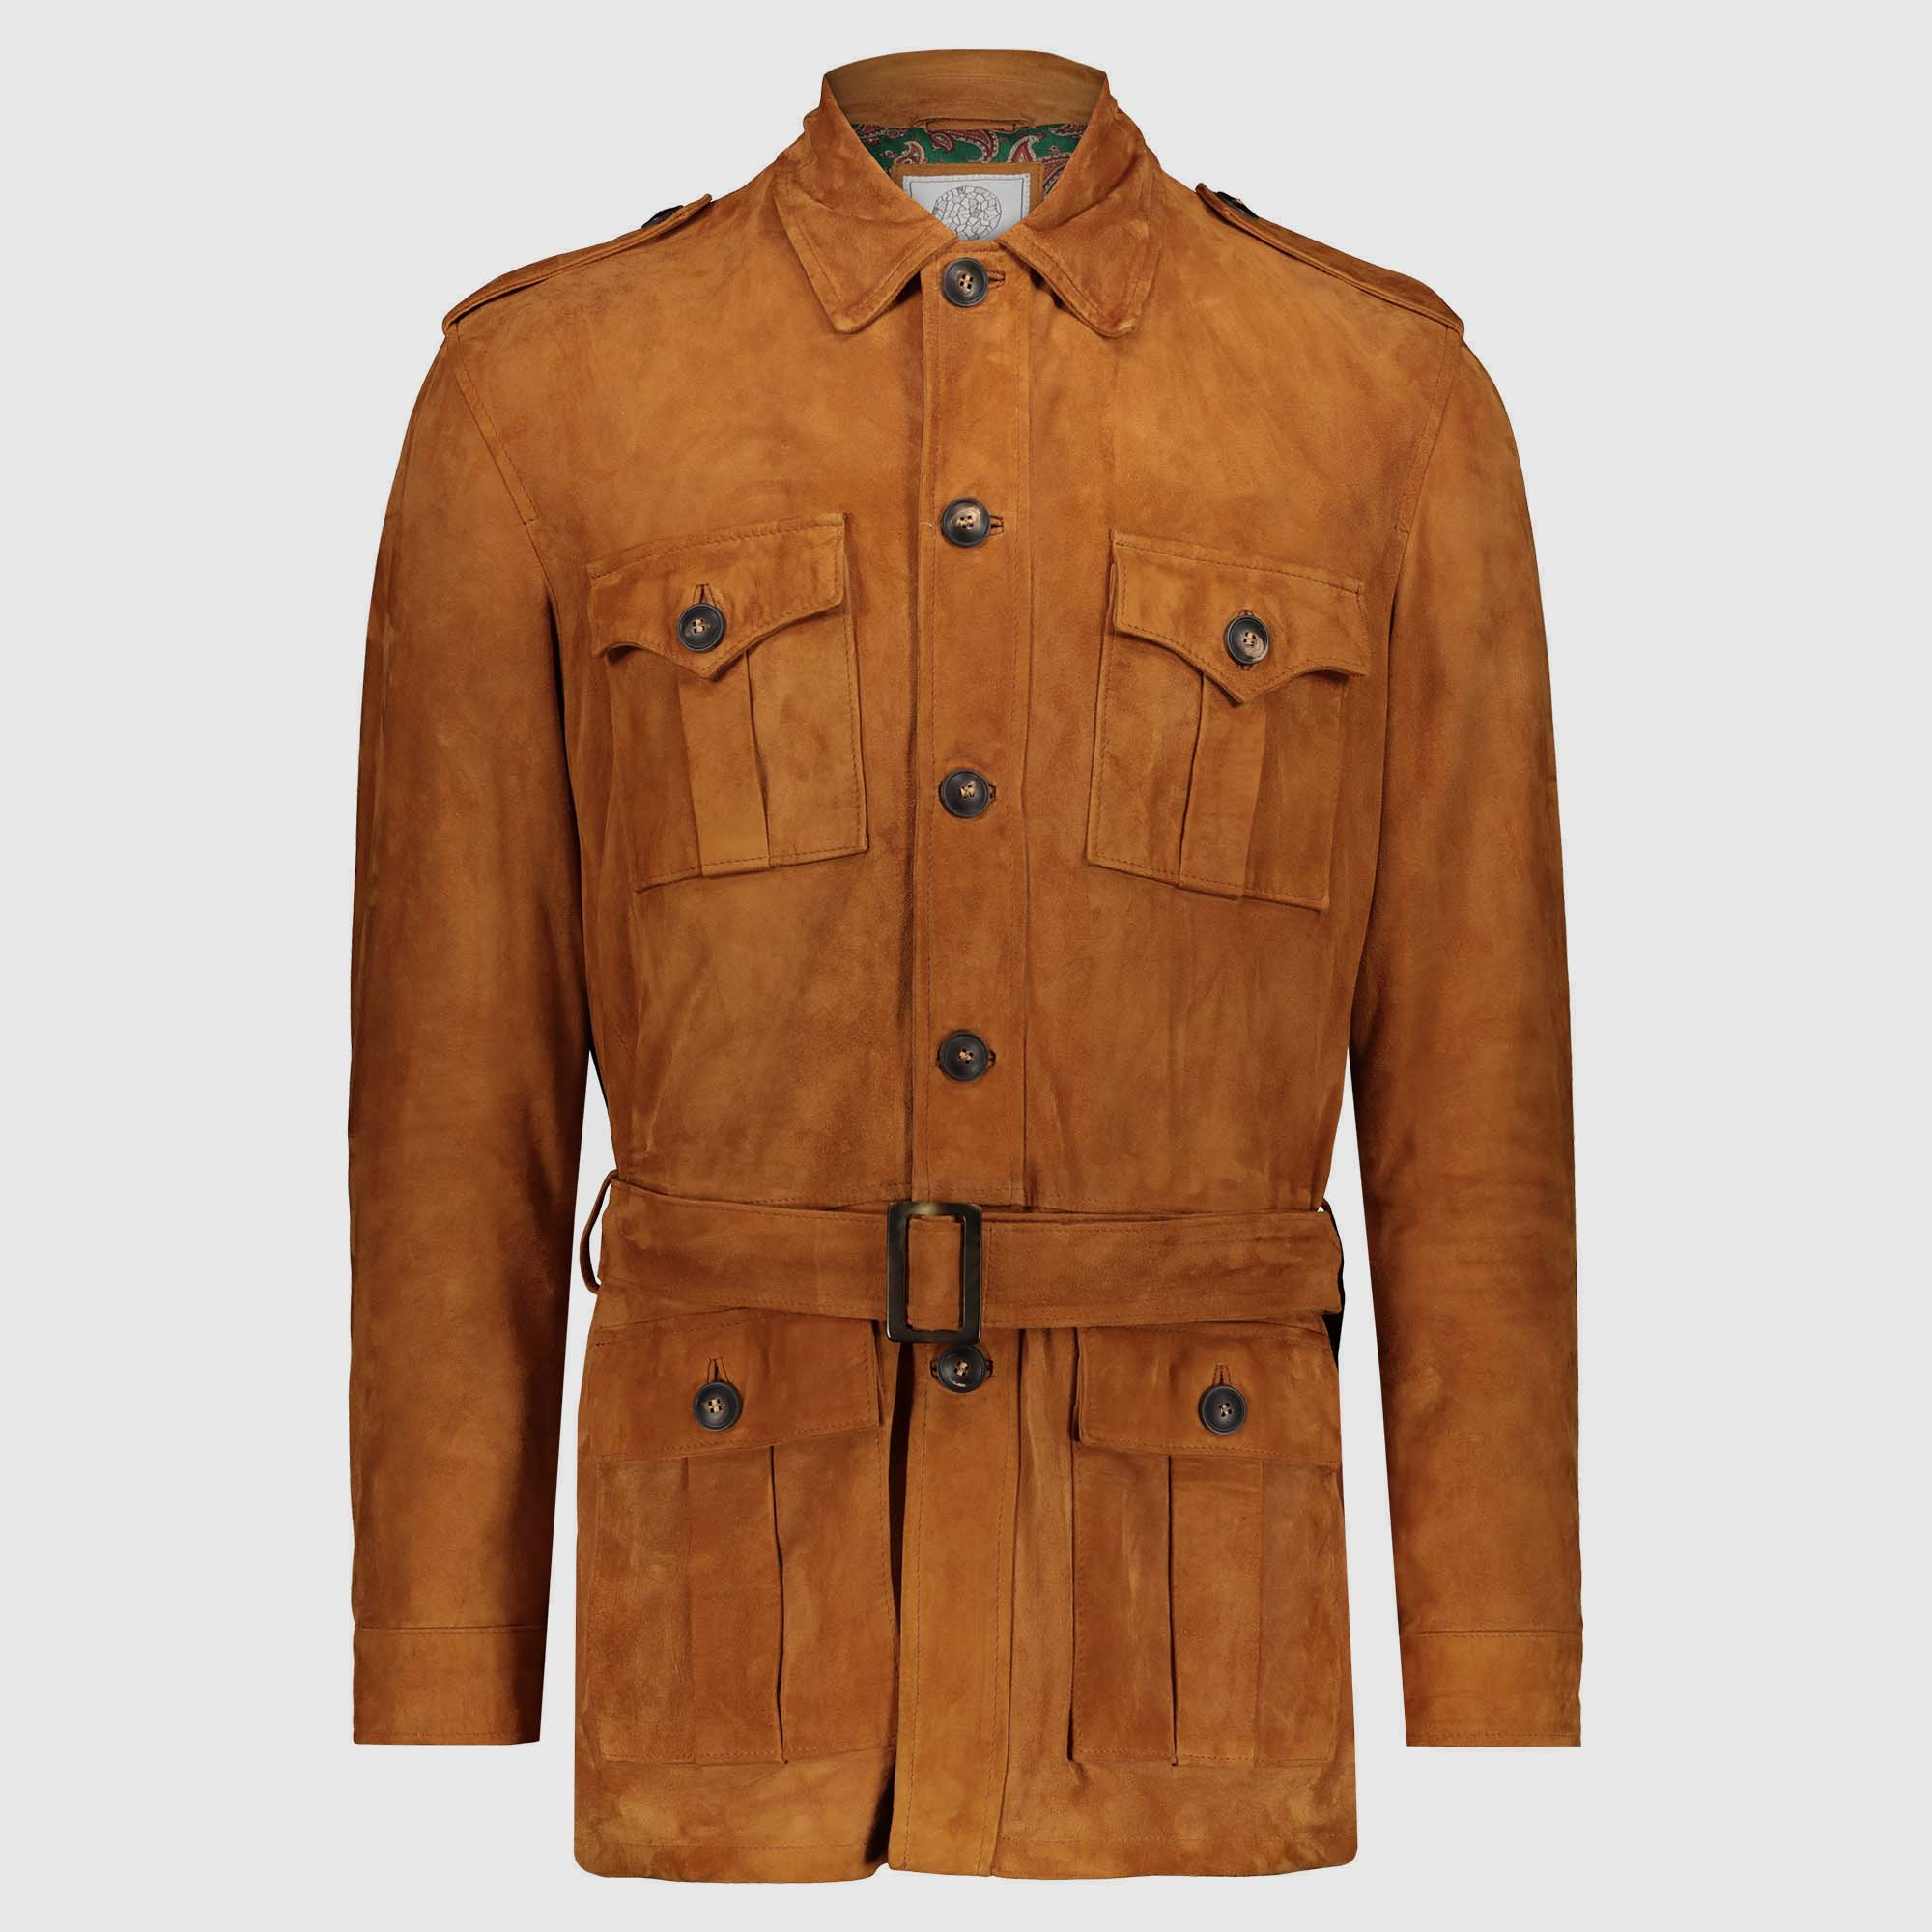 Atacama's Natural-colored leather Safari Jacket